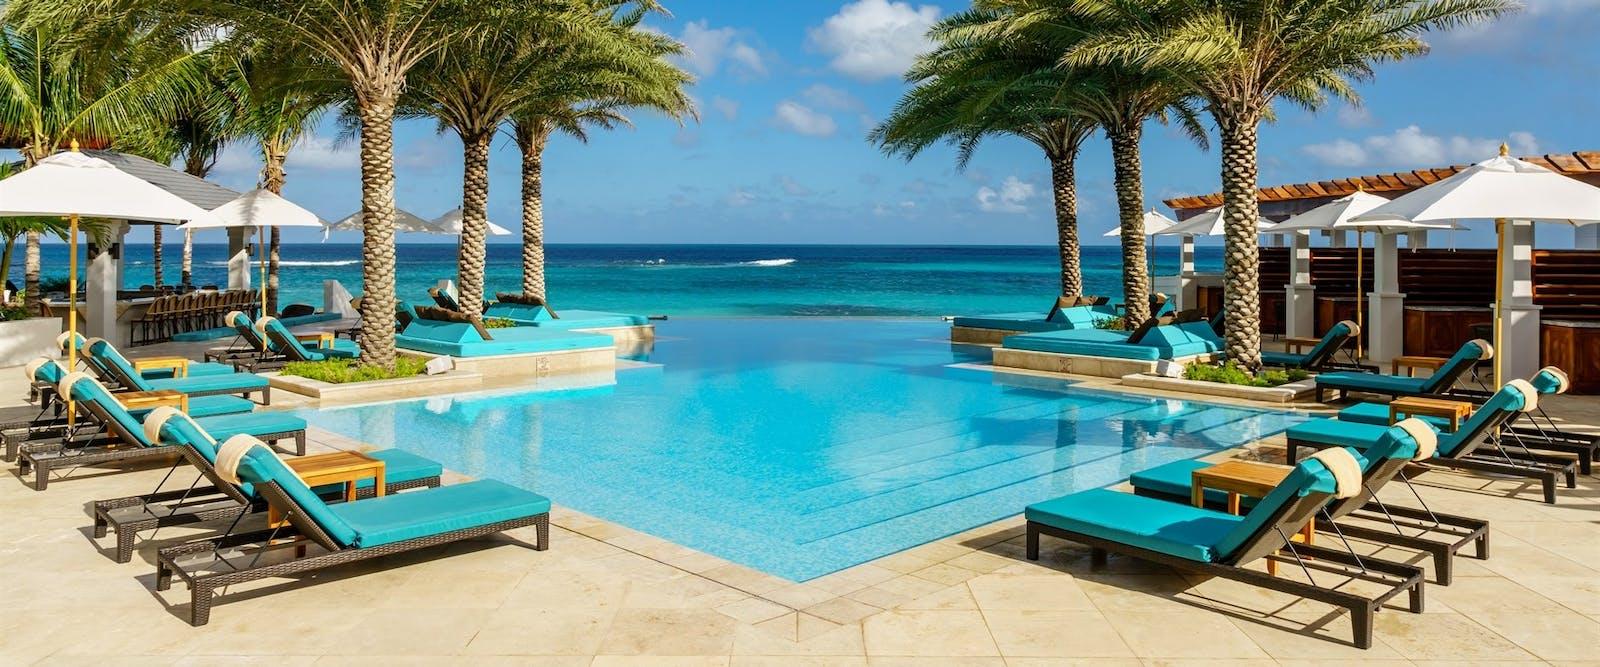 Swimming Pool at Zemi Beach House, Anguilla